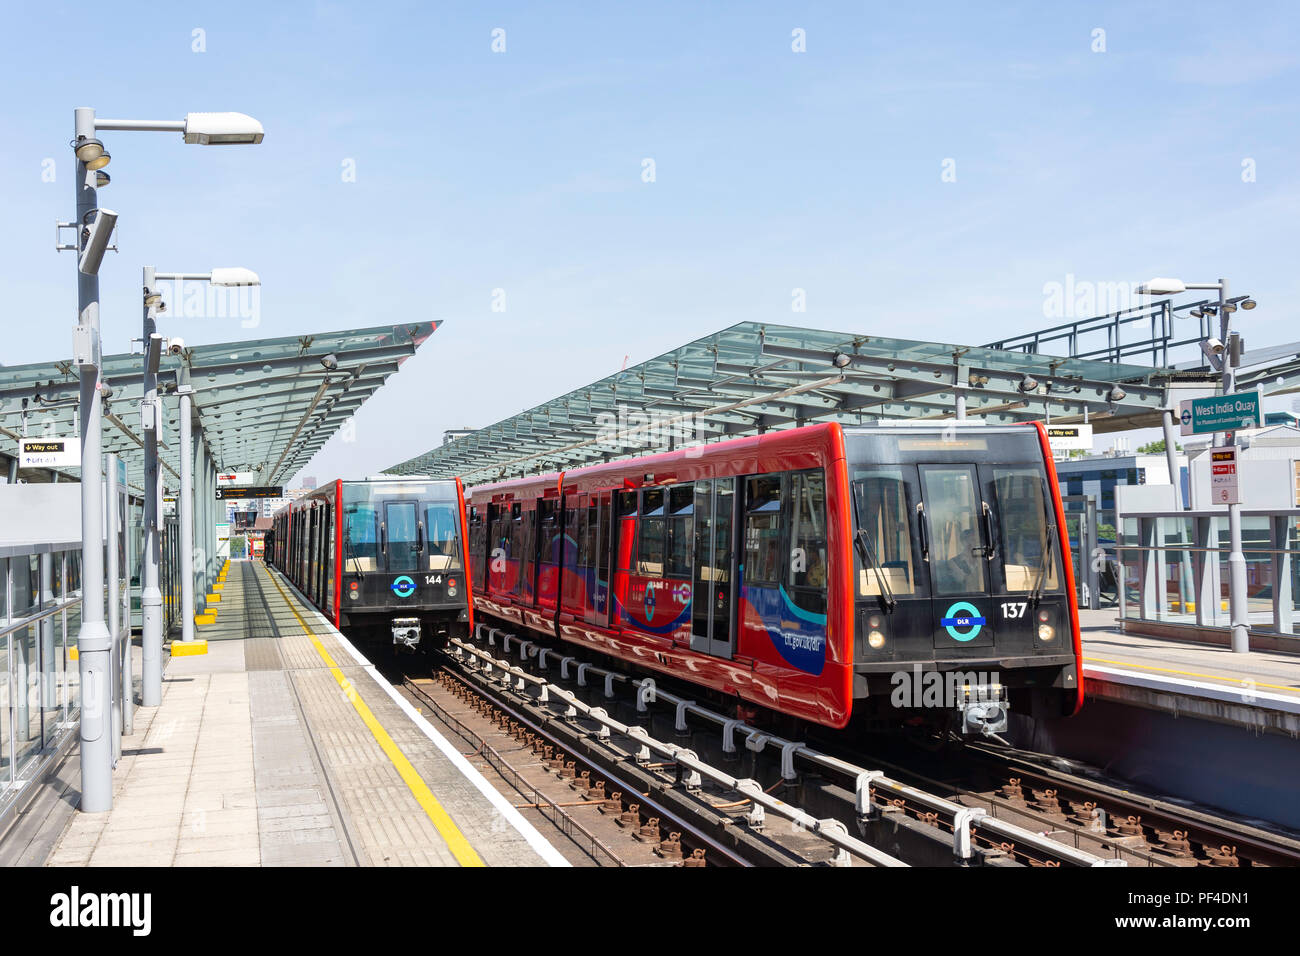 DLR Trains on platforms at West India Quay station, Canary Wharf, London Borough of Tower Hamlets, Greater London, England, United Kingdom - Stock Image